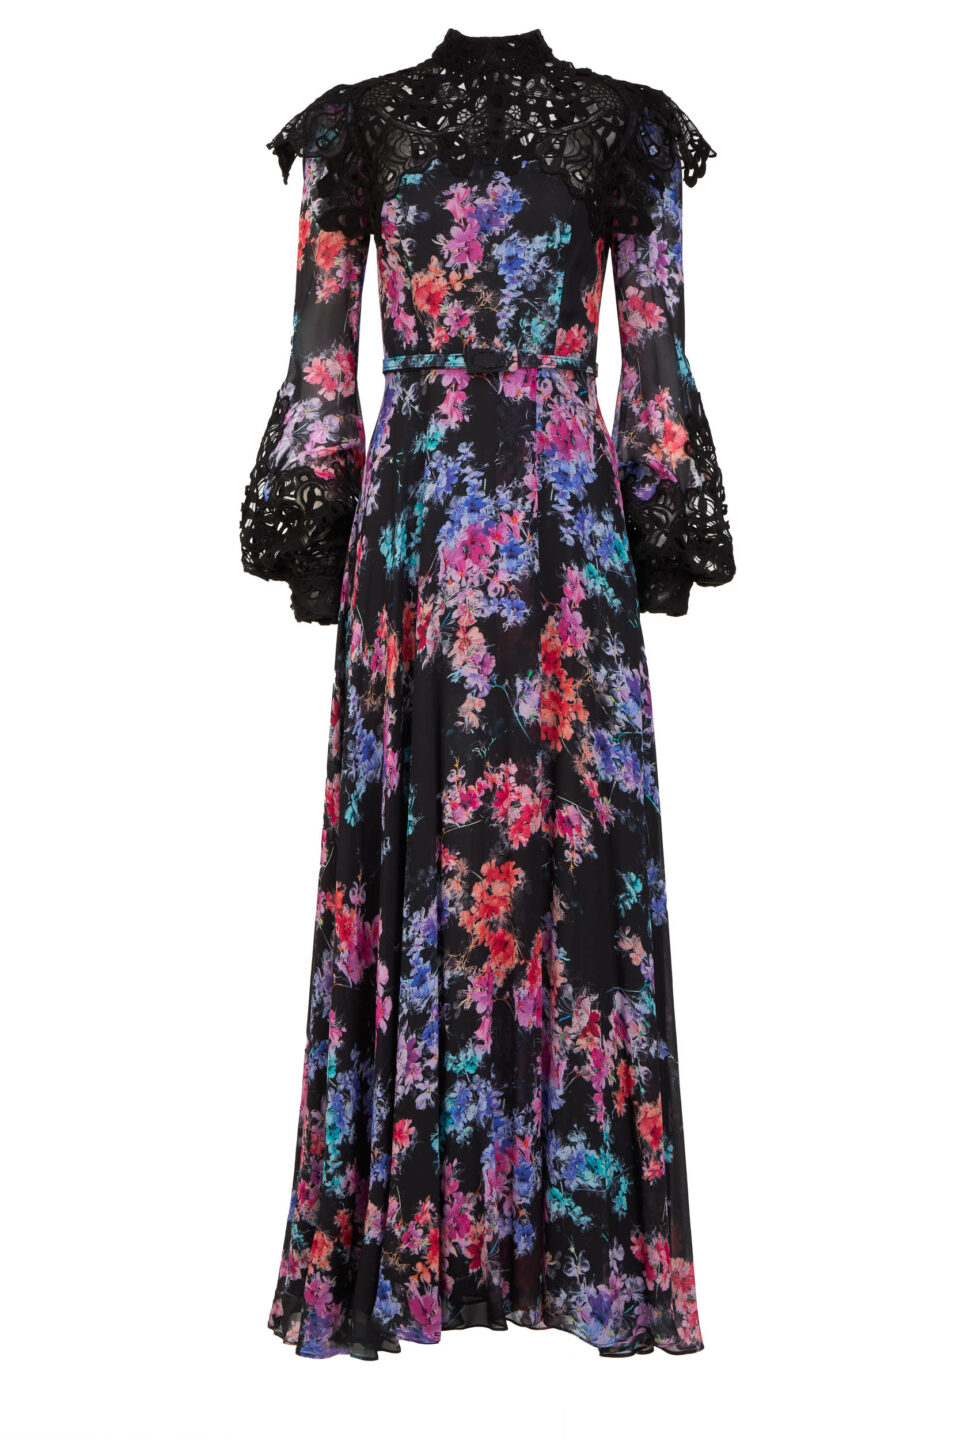 Isabella FW2120 Black Floral-Printed Chiffon Dress with Embroidered Lace Appliques, Side Slit & Coordinating Belt